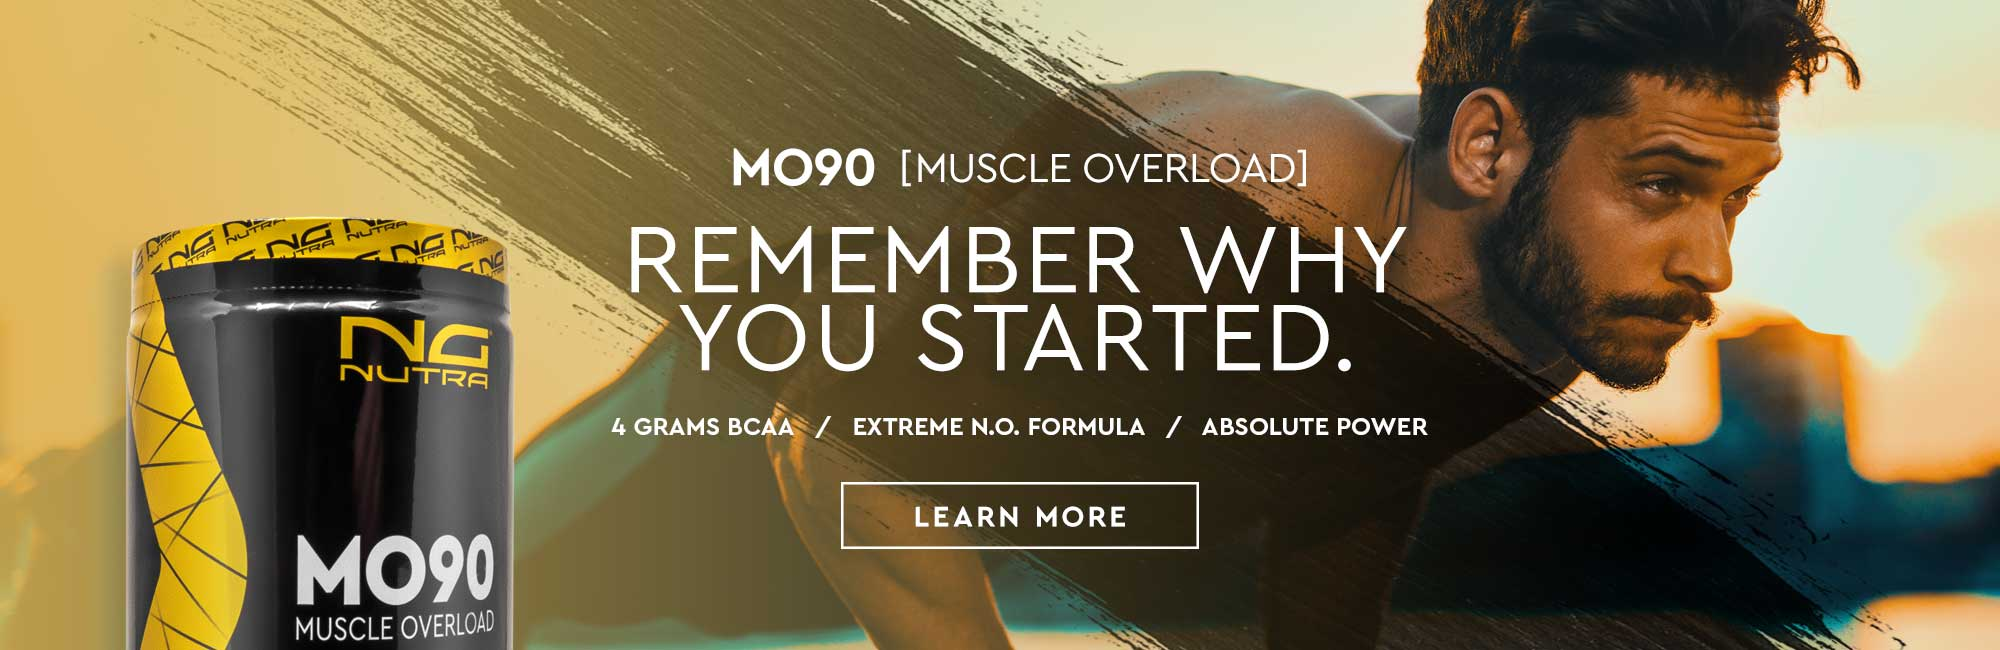 MO90 [Muscle Overload] Remember Why You Started.